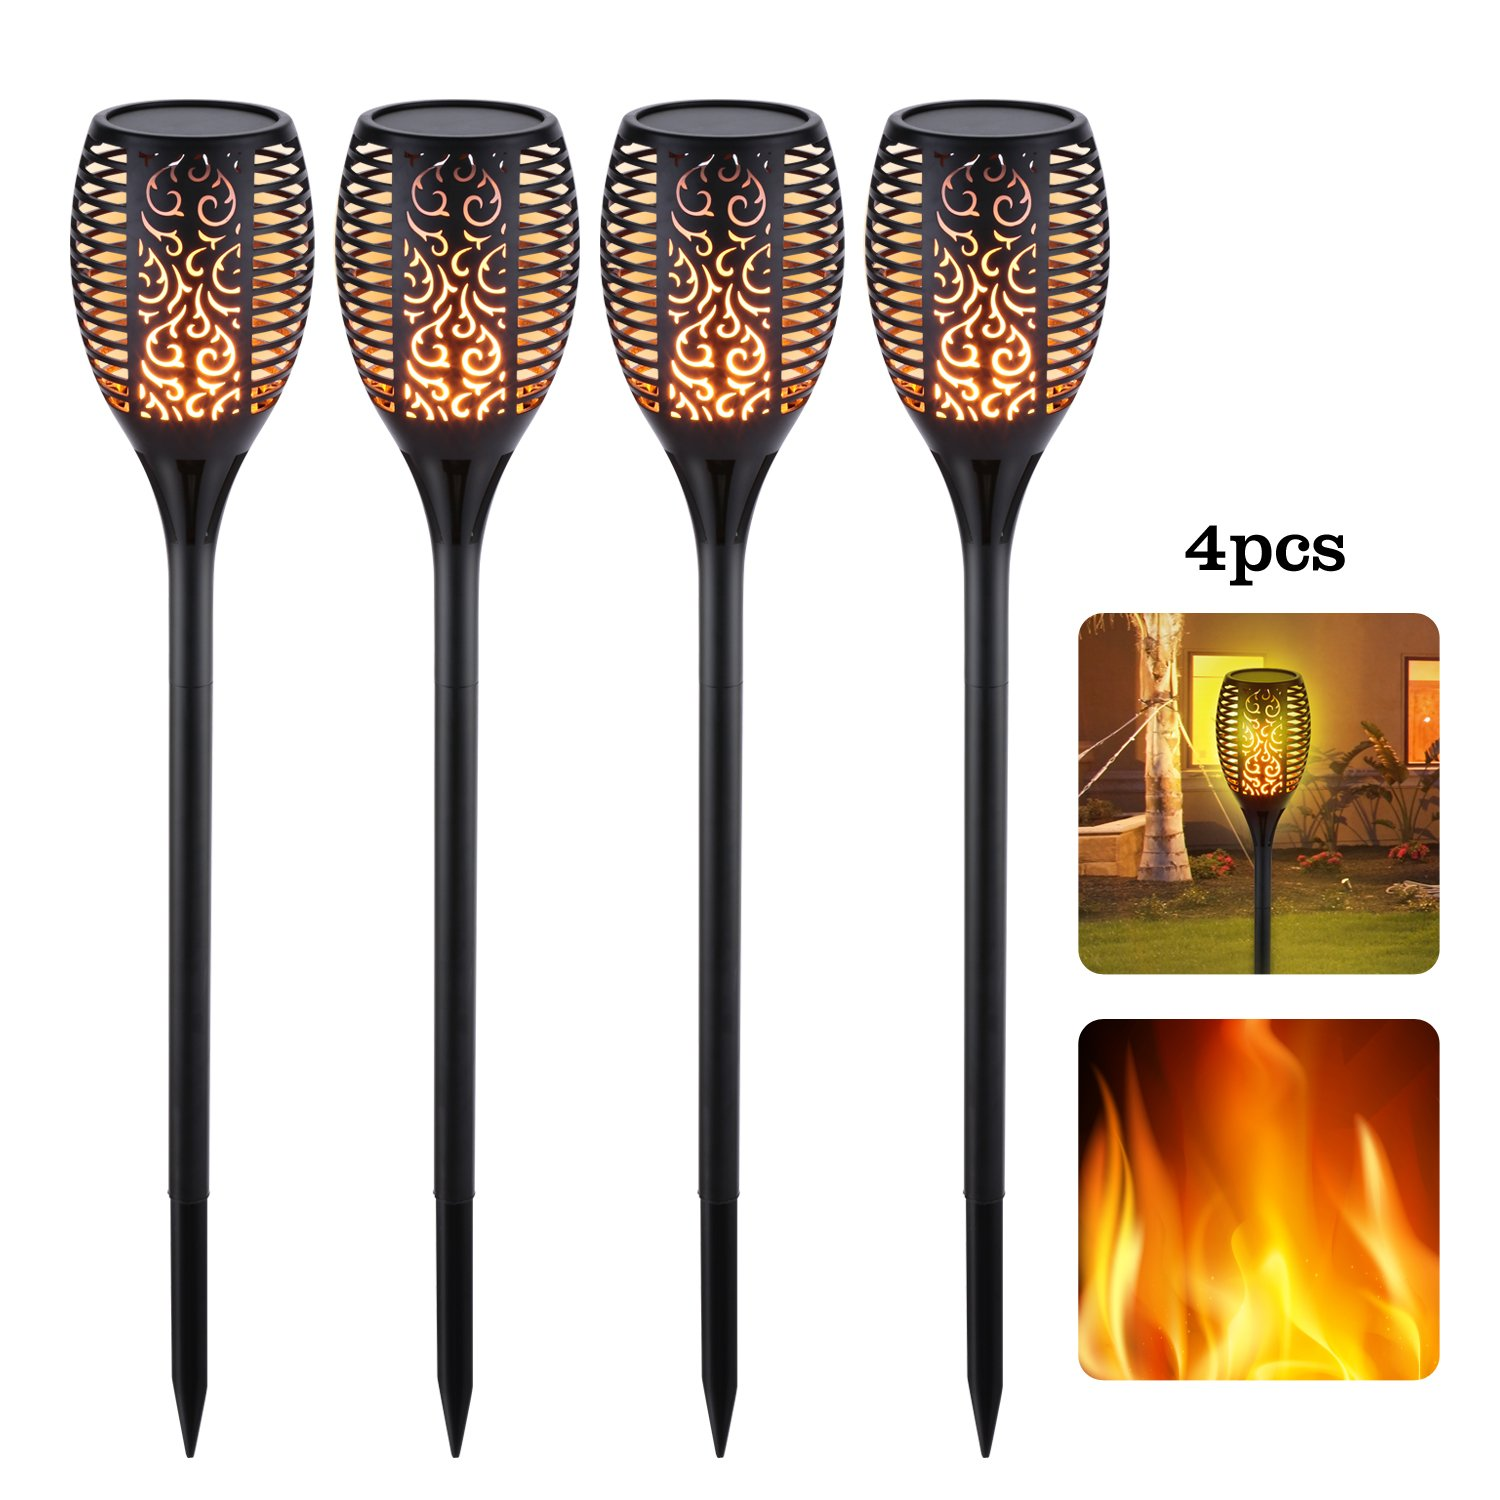 Solar Torch Lights - Waterproof Landscape Lighting - Outdoor Garden Light - LED Dancing Flame Exterior Lights Set - Decorative Battery Operated Fixtures|Patio Porch Deck & Driveway Lights - 4-Pack